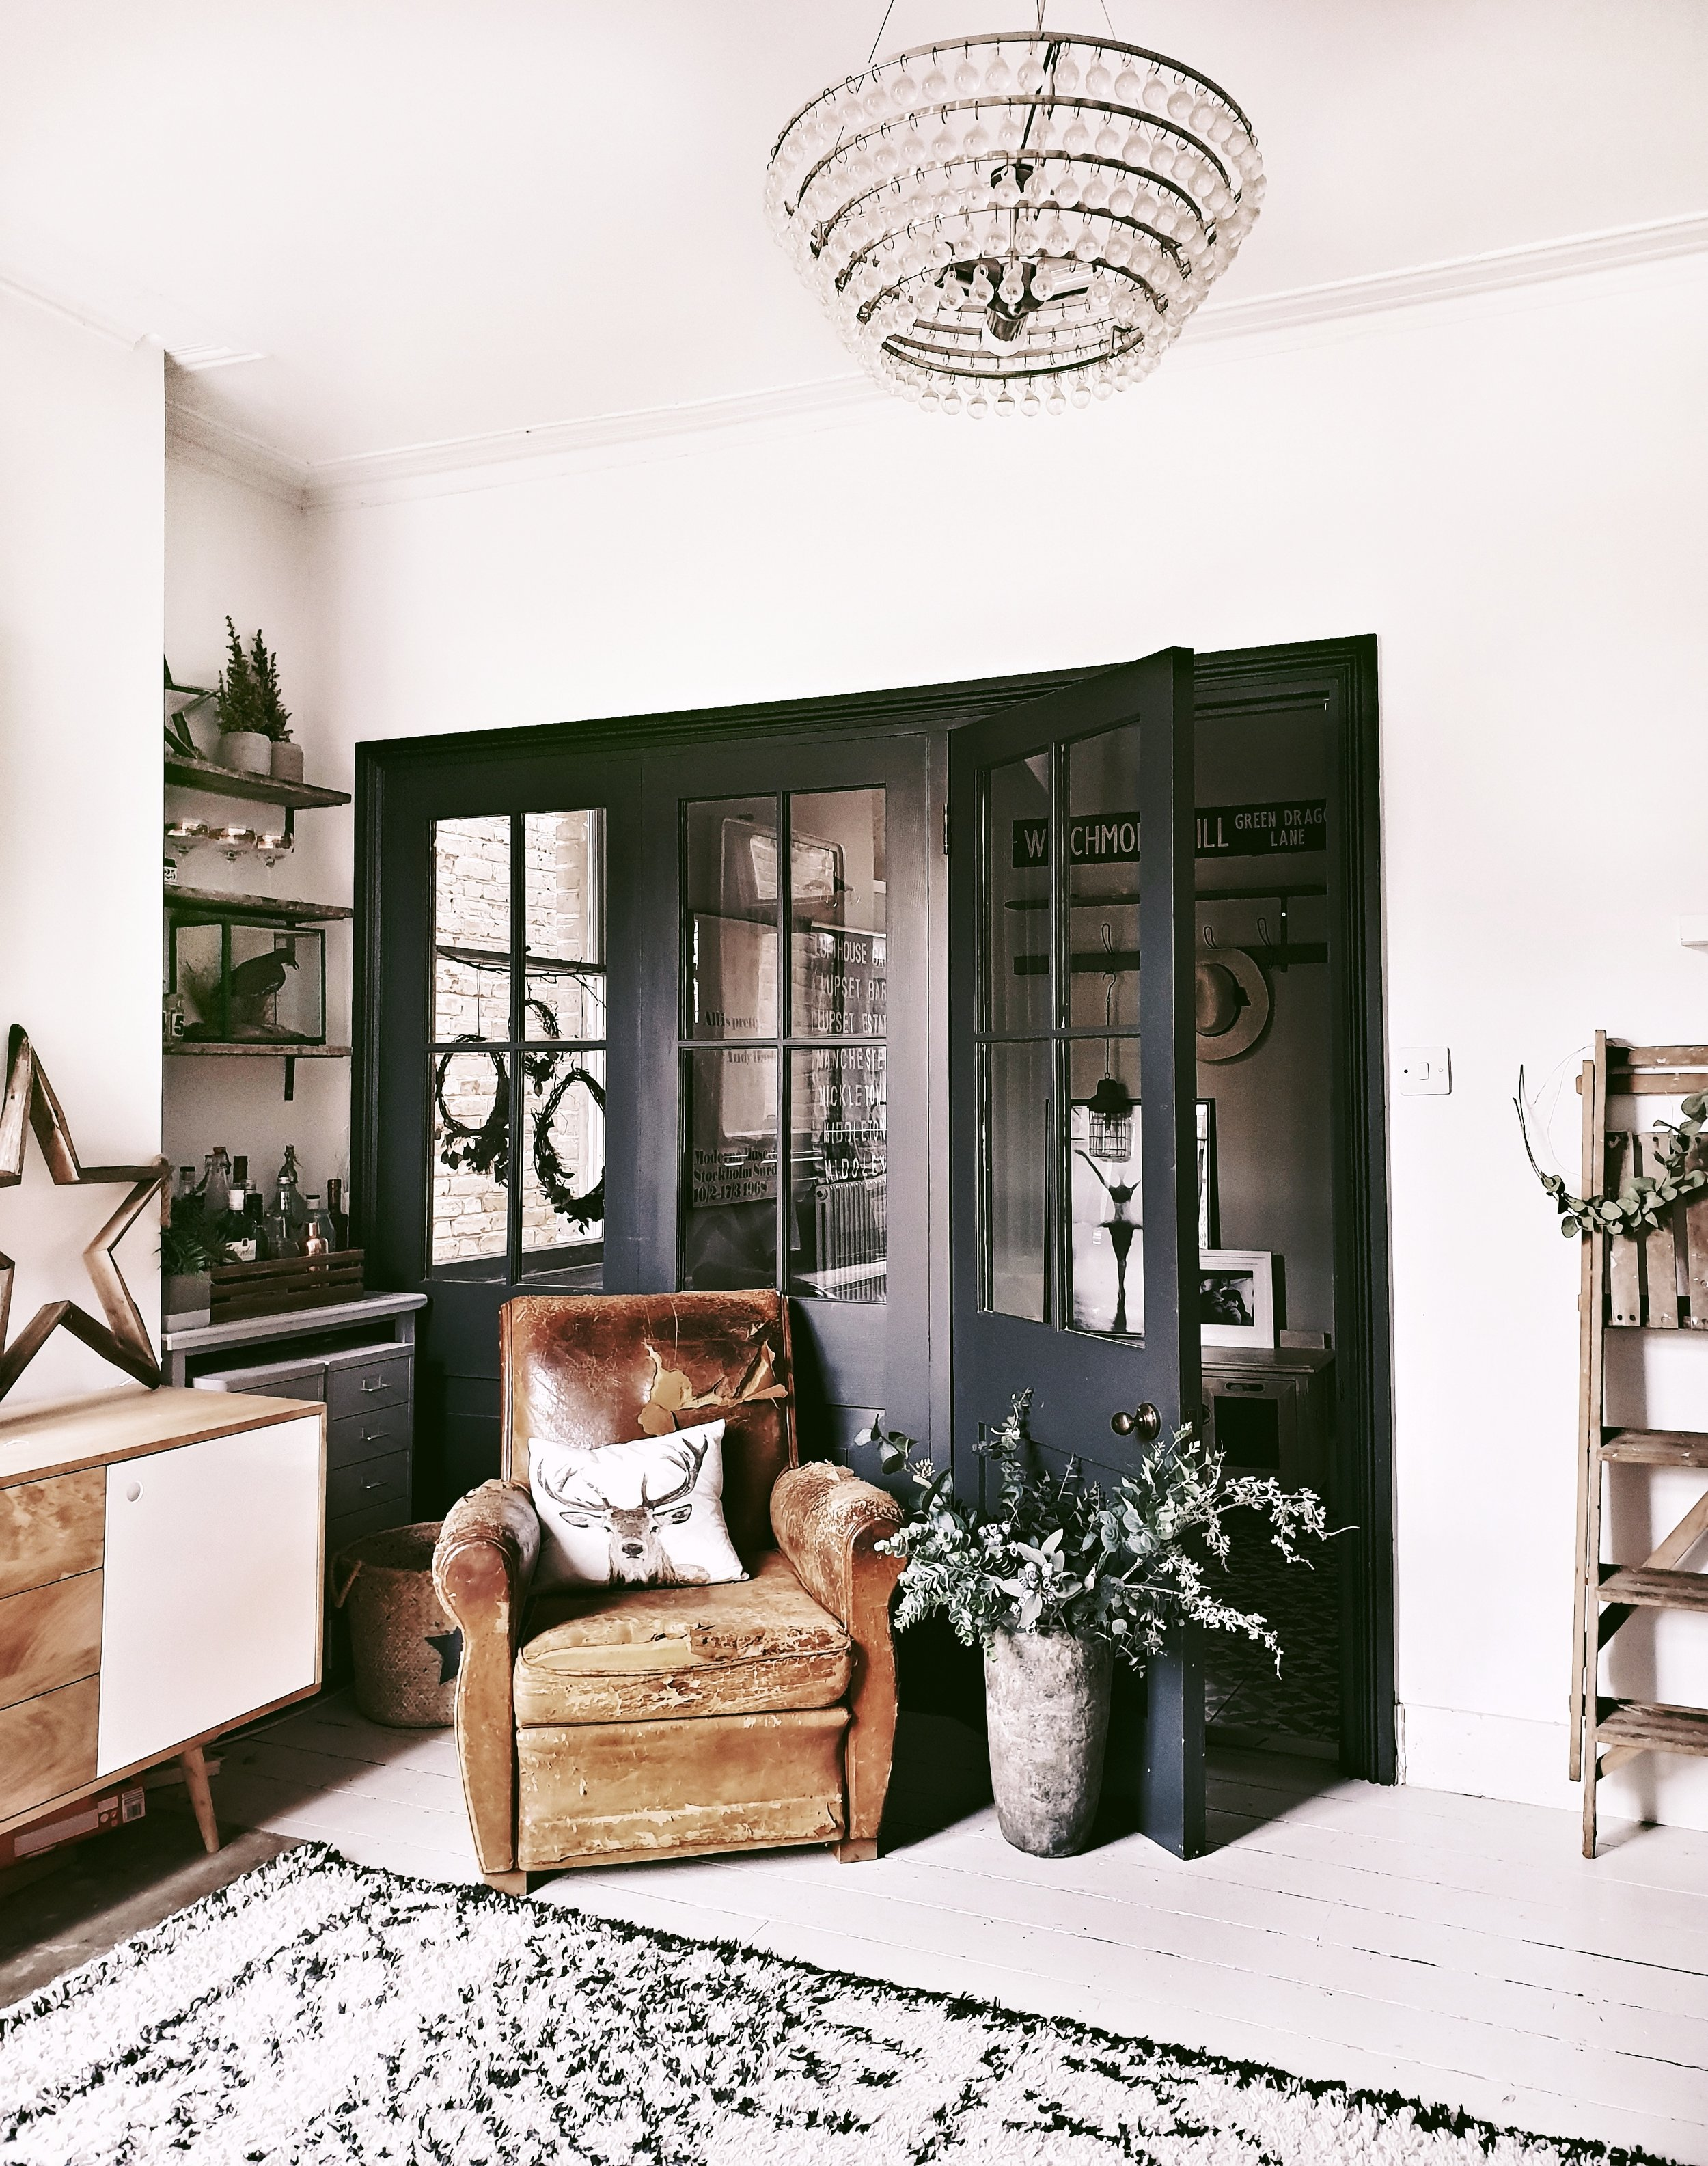 This side of the room often pops up on Instagram as it features one of my favourite additions to the house: these faux crittal doors